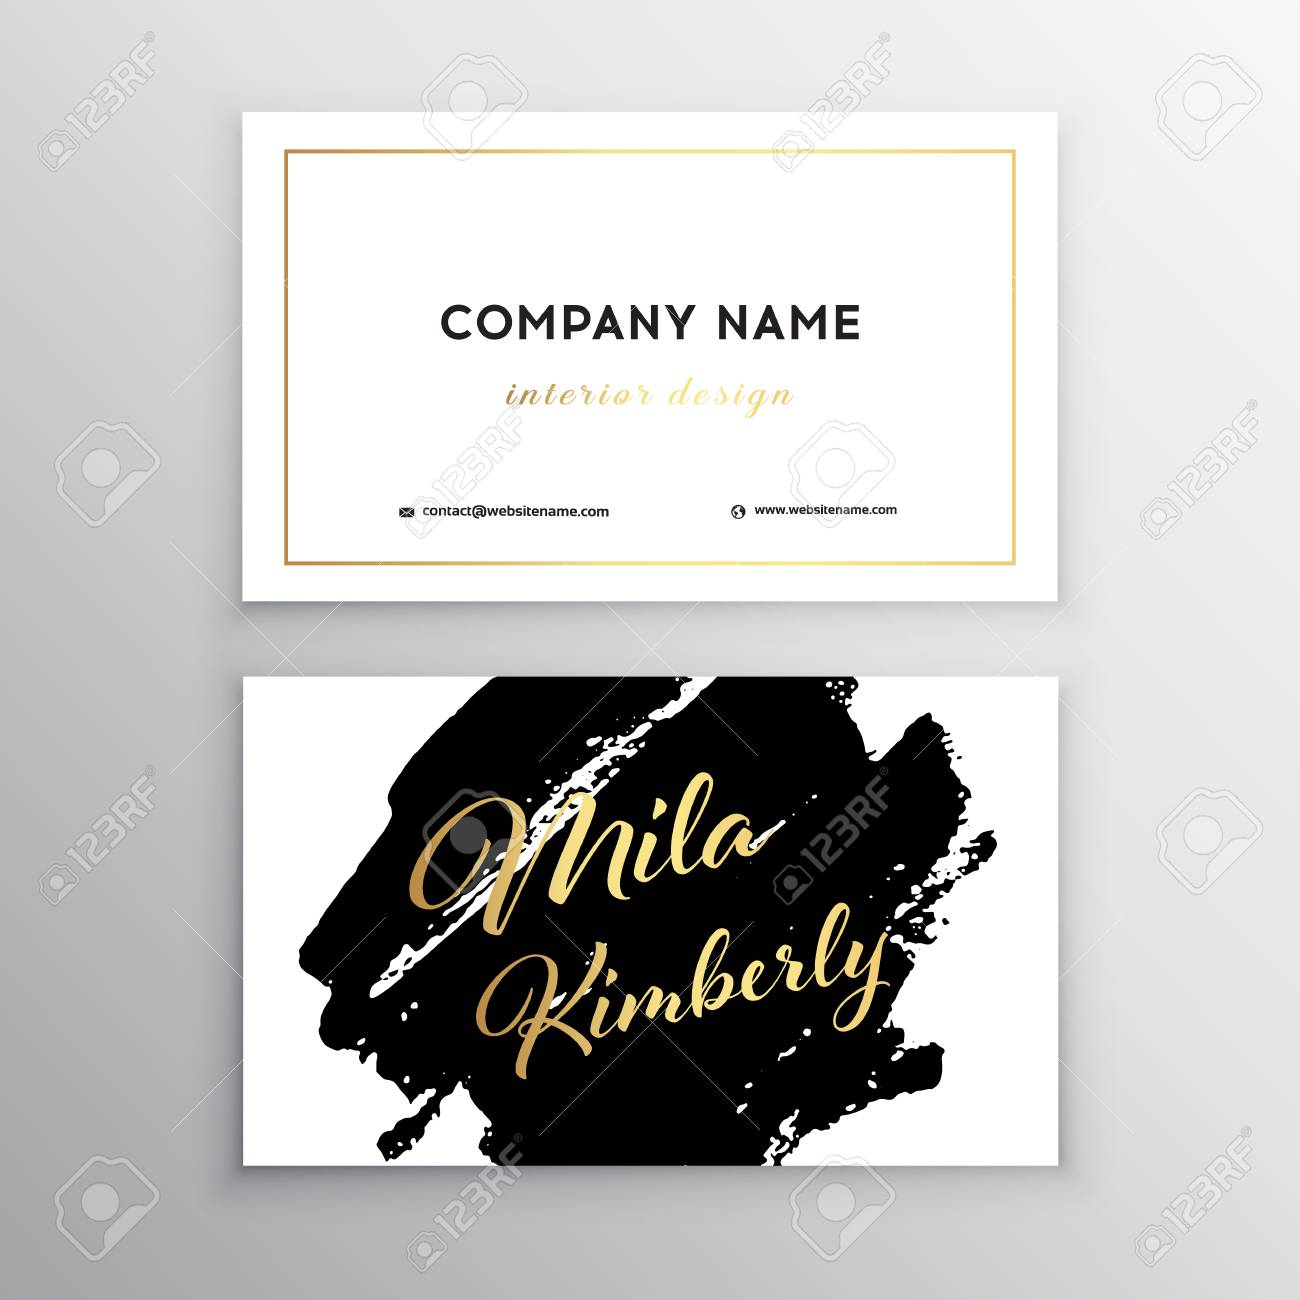 Calligraphy Templates Online Set Of Black And Gold Design Templates For Brochures Flyers